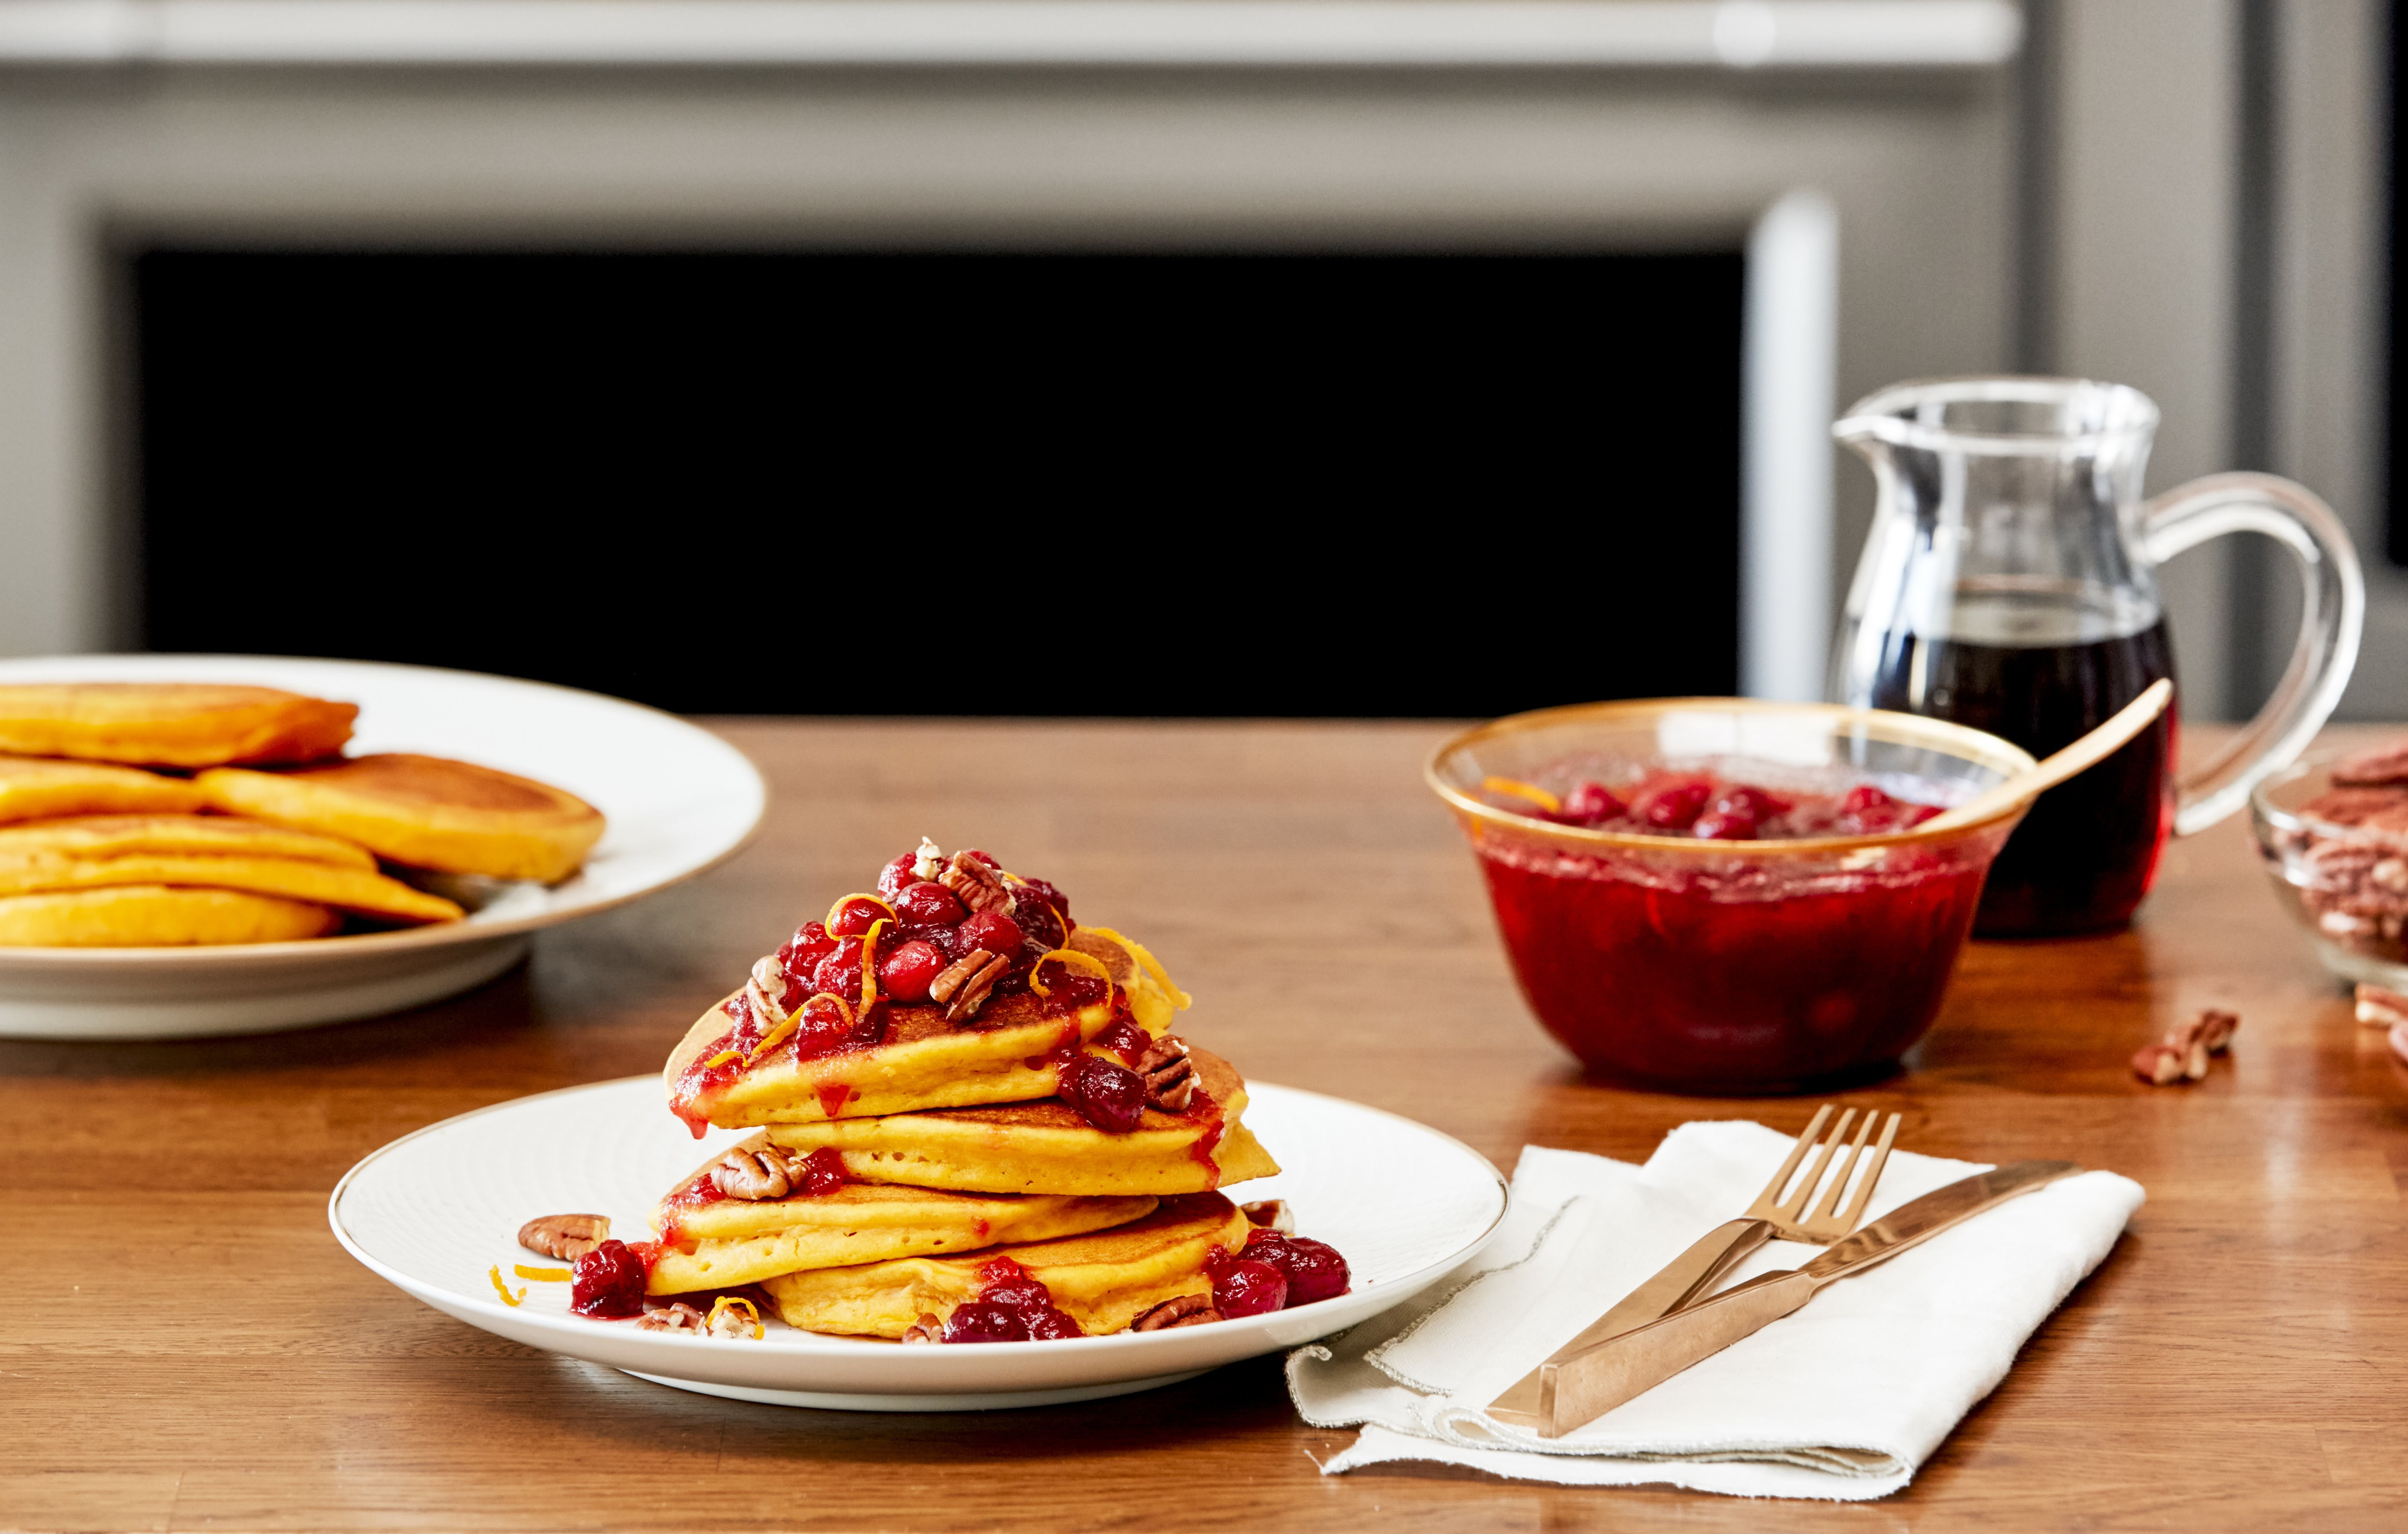 Day-After-Thanksgiving Pumpkin Pancakes with Cranberry Topping